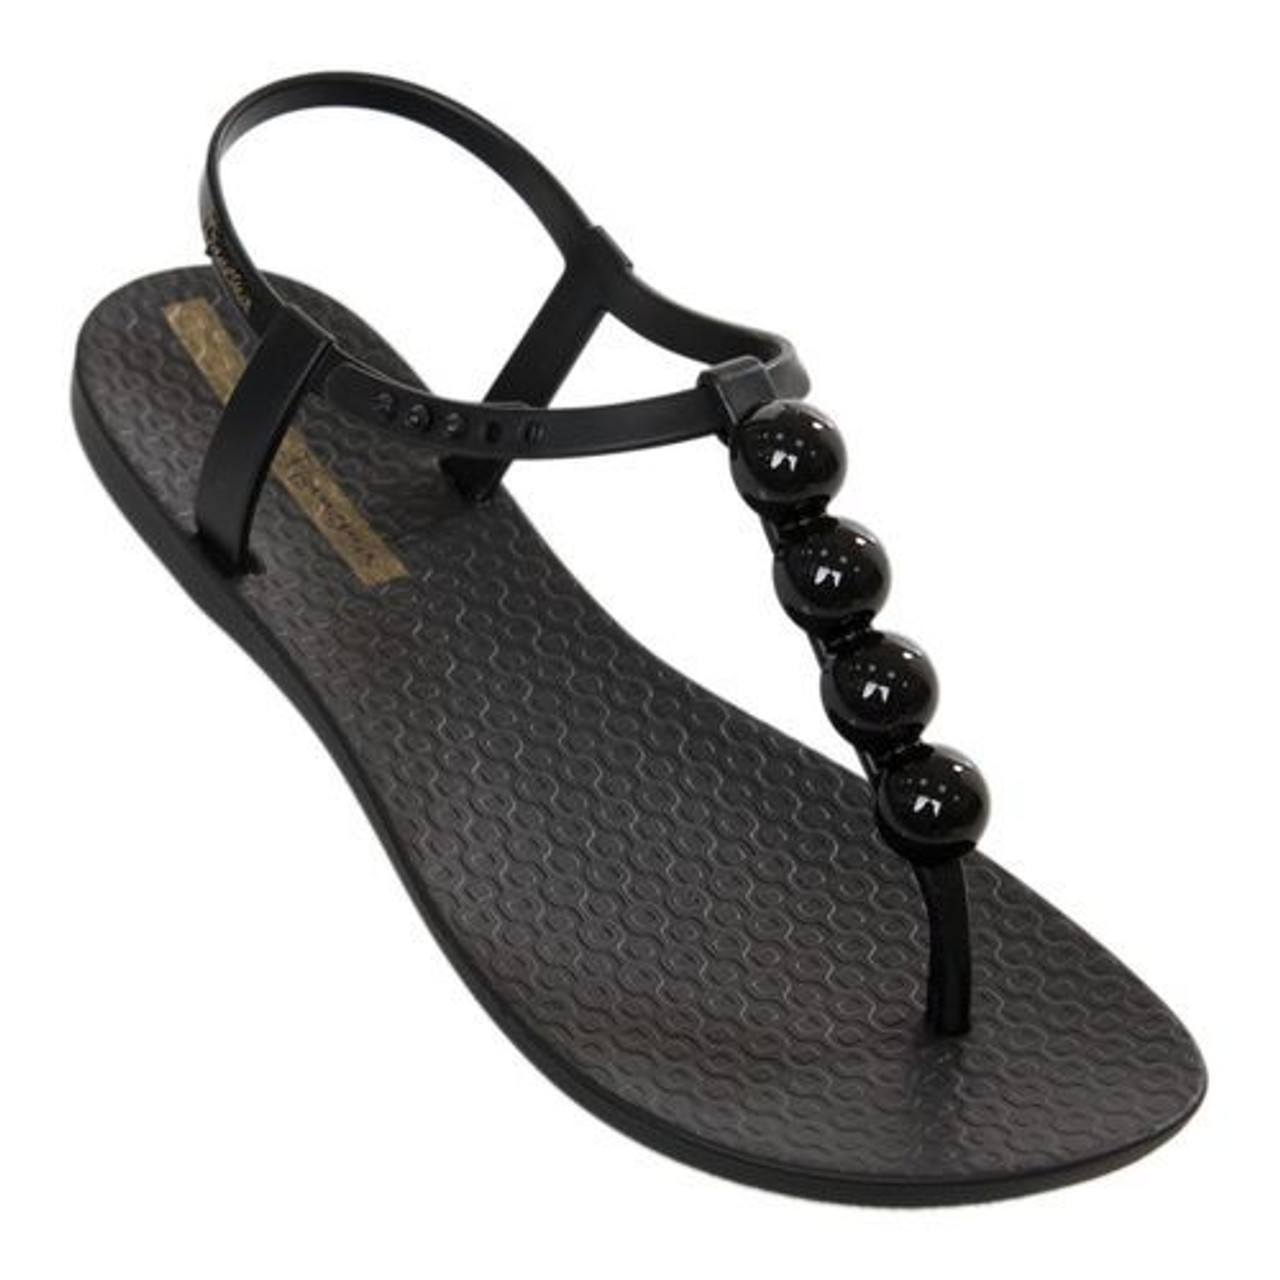 Sandals Strap Black Ipanema In Pearl T VqUGSzMp